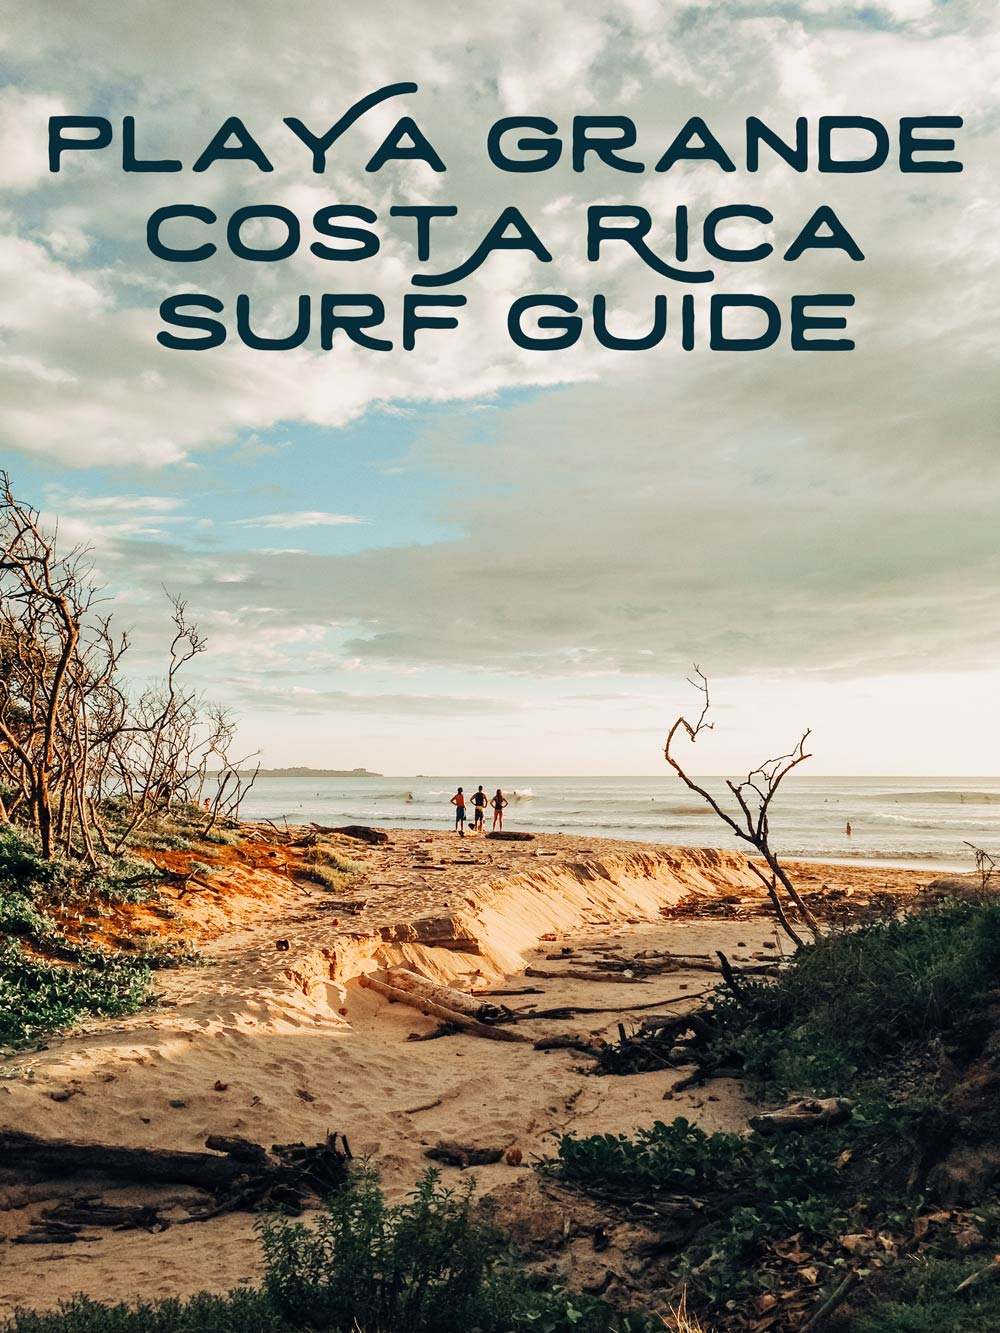 Playa Grande Costa Rica surf guide by Kristen M Brown, Samba to the Sea.